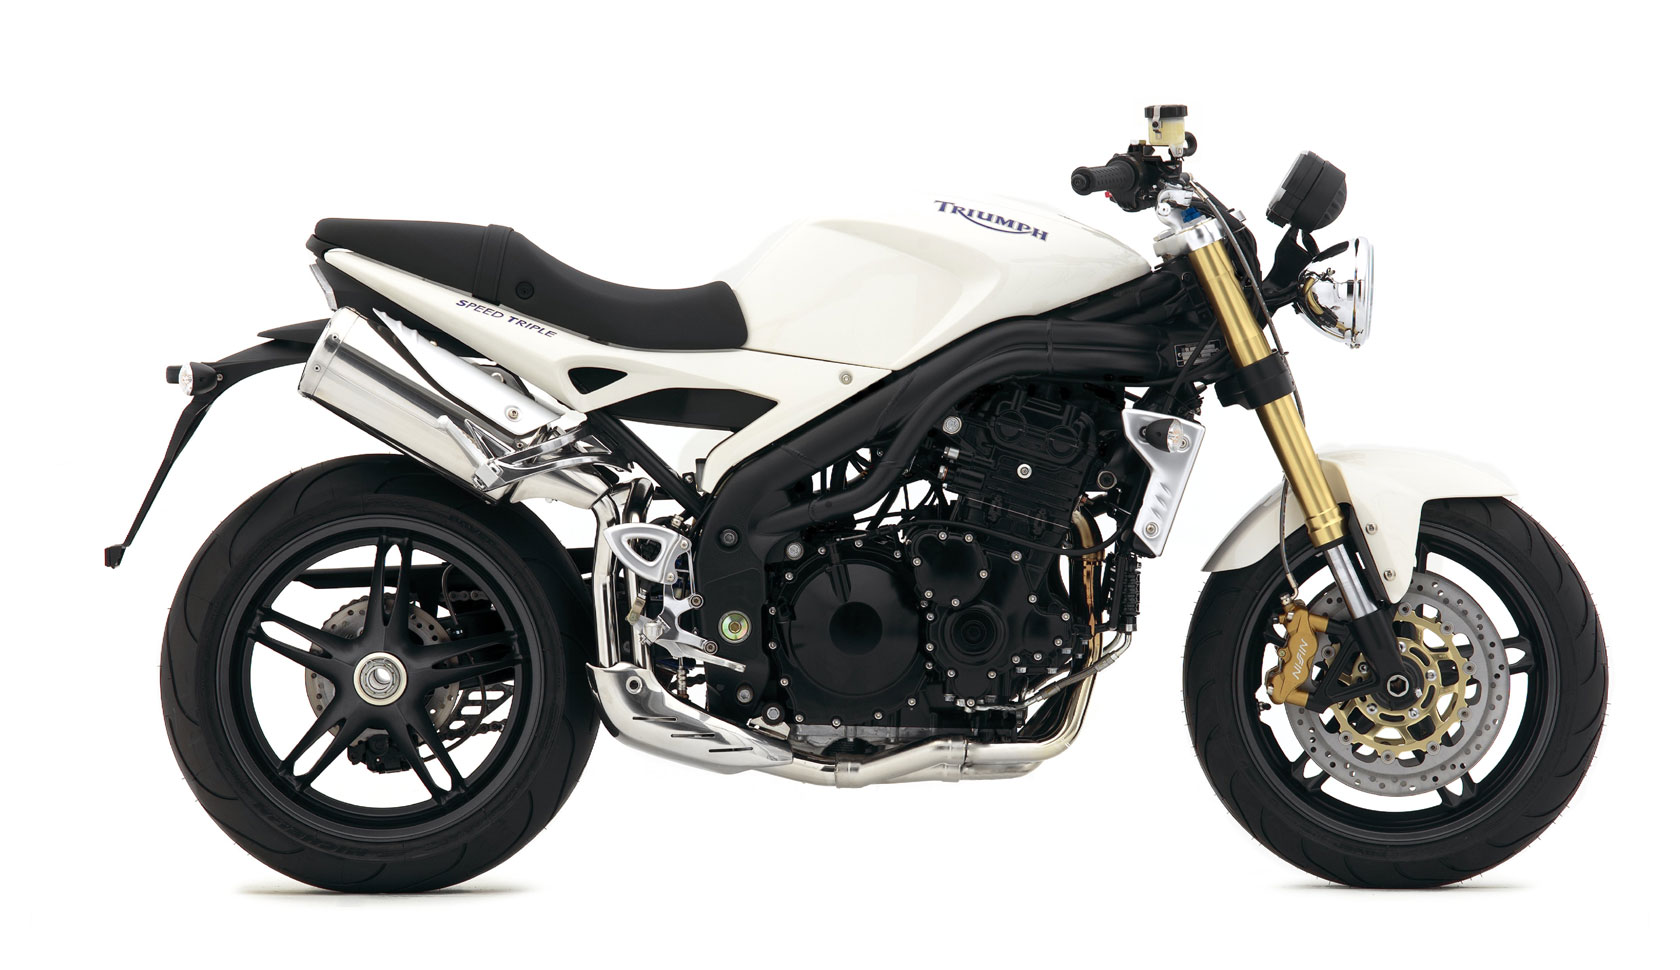 Triumph Speed Triple 1050 2006 images #147477